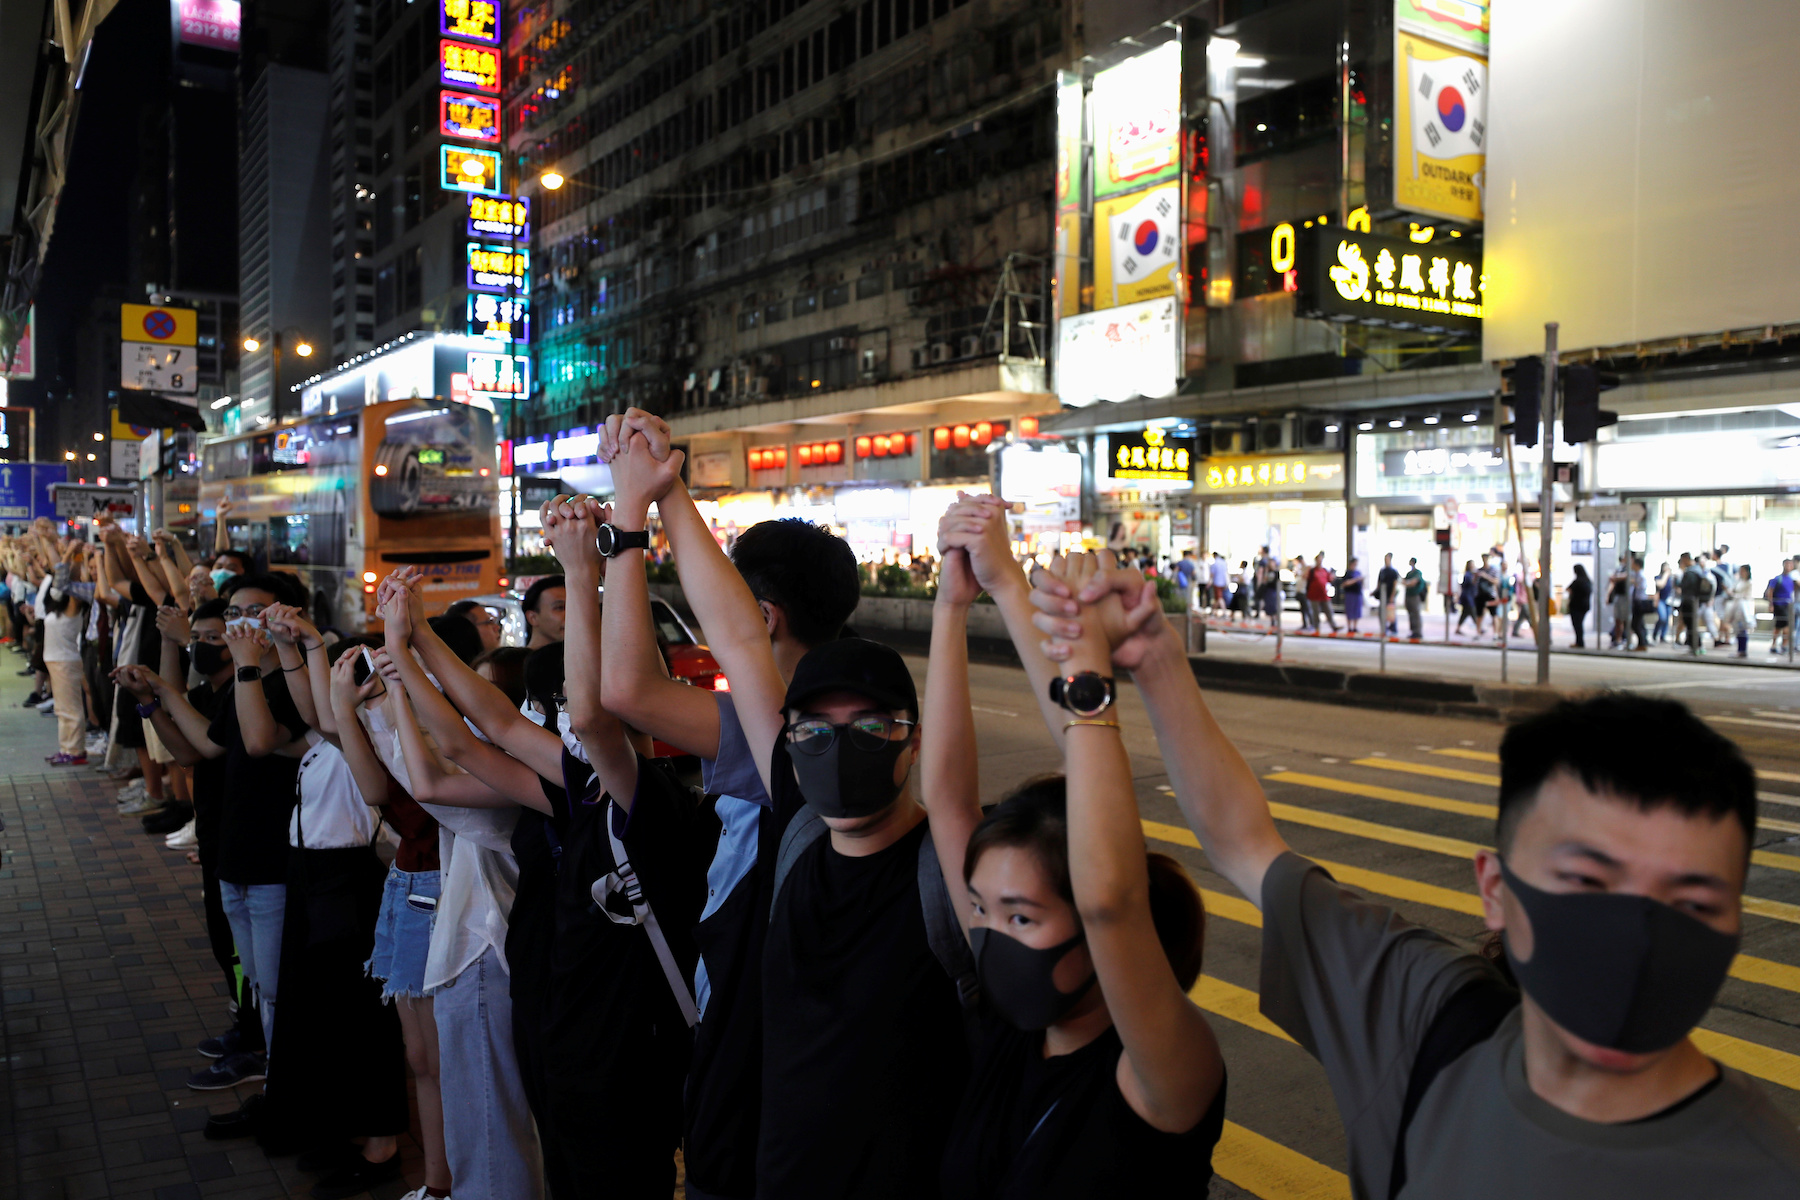 Anti-extradition bill protesters hold hands to form a human chain during a rally to call for political reforms at Mongkok, in Hong Kong